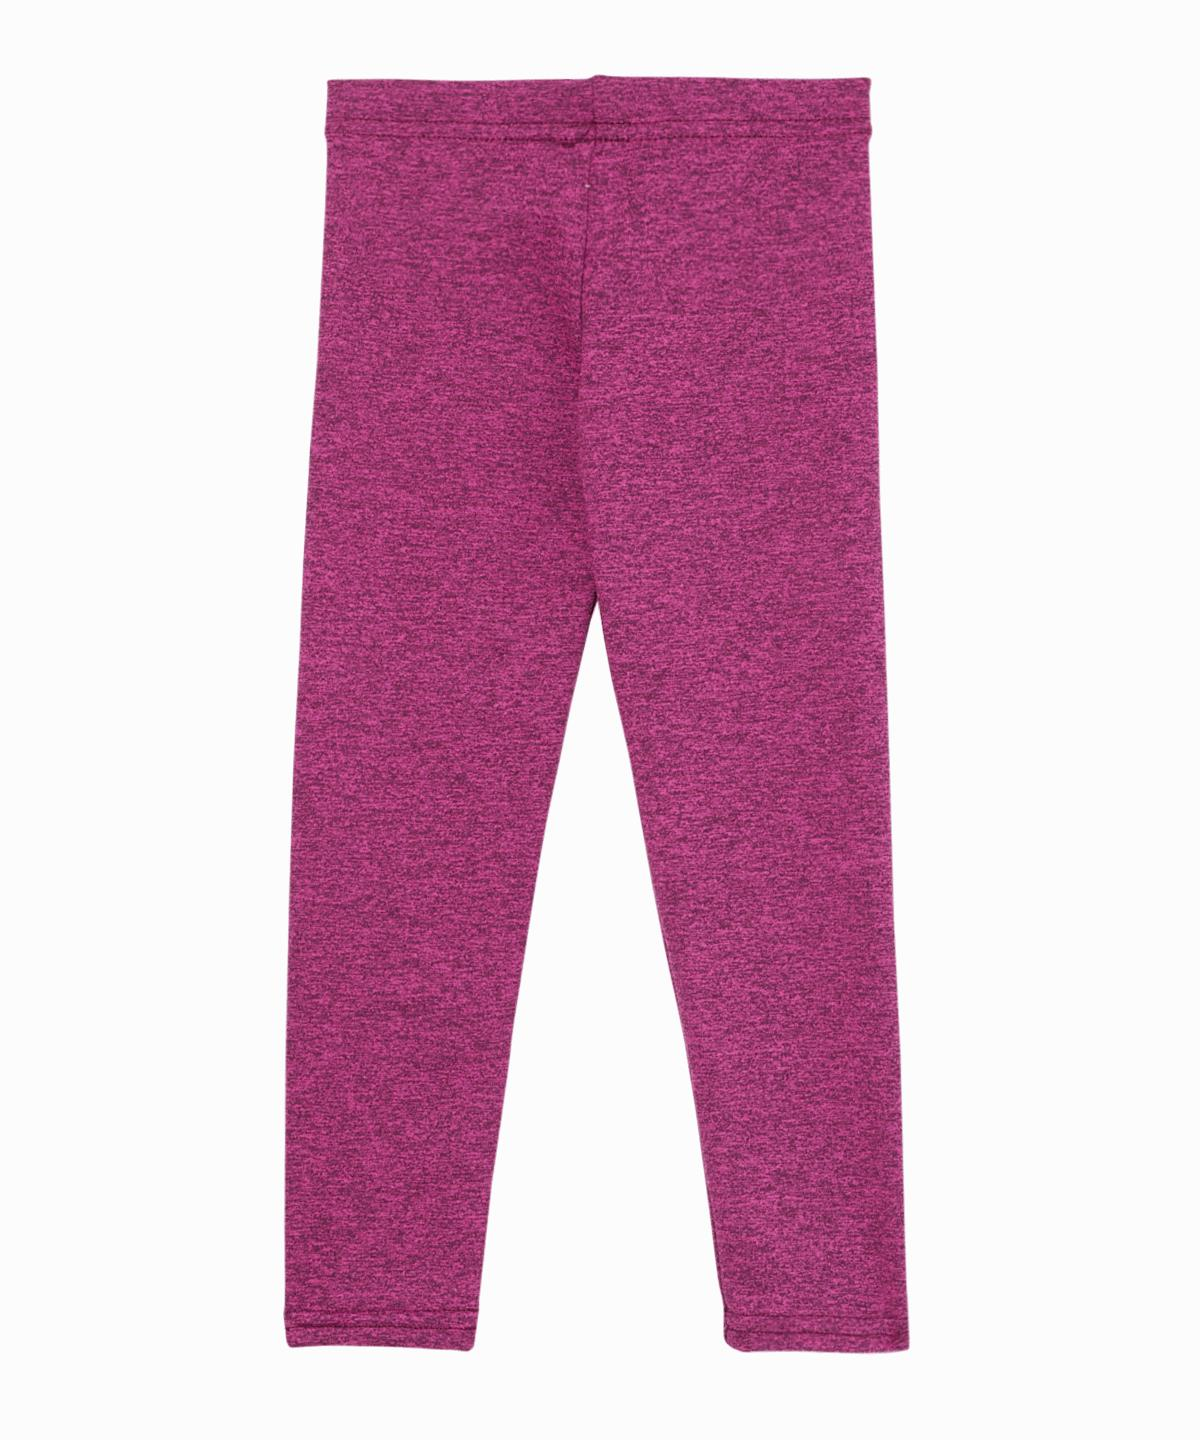 Purple Heather Leggings